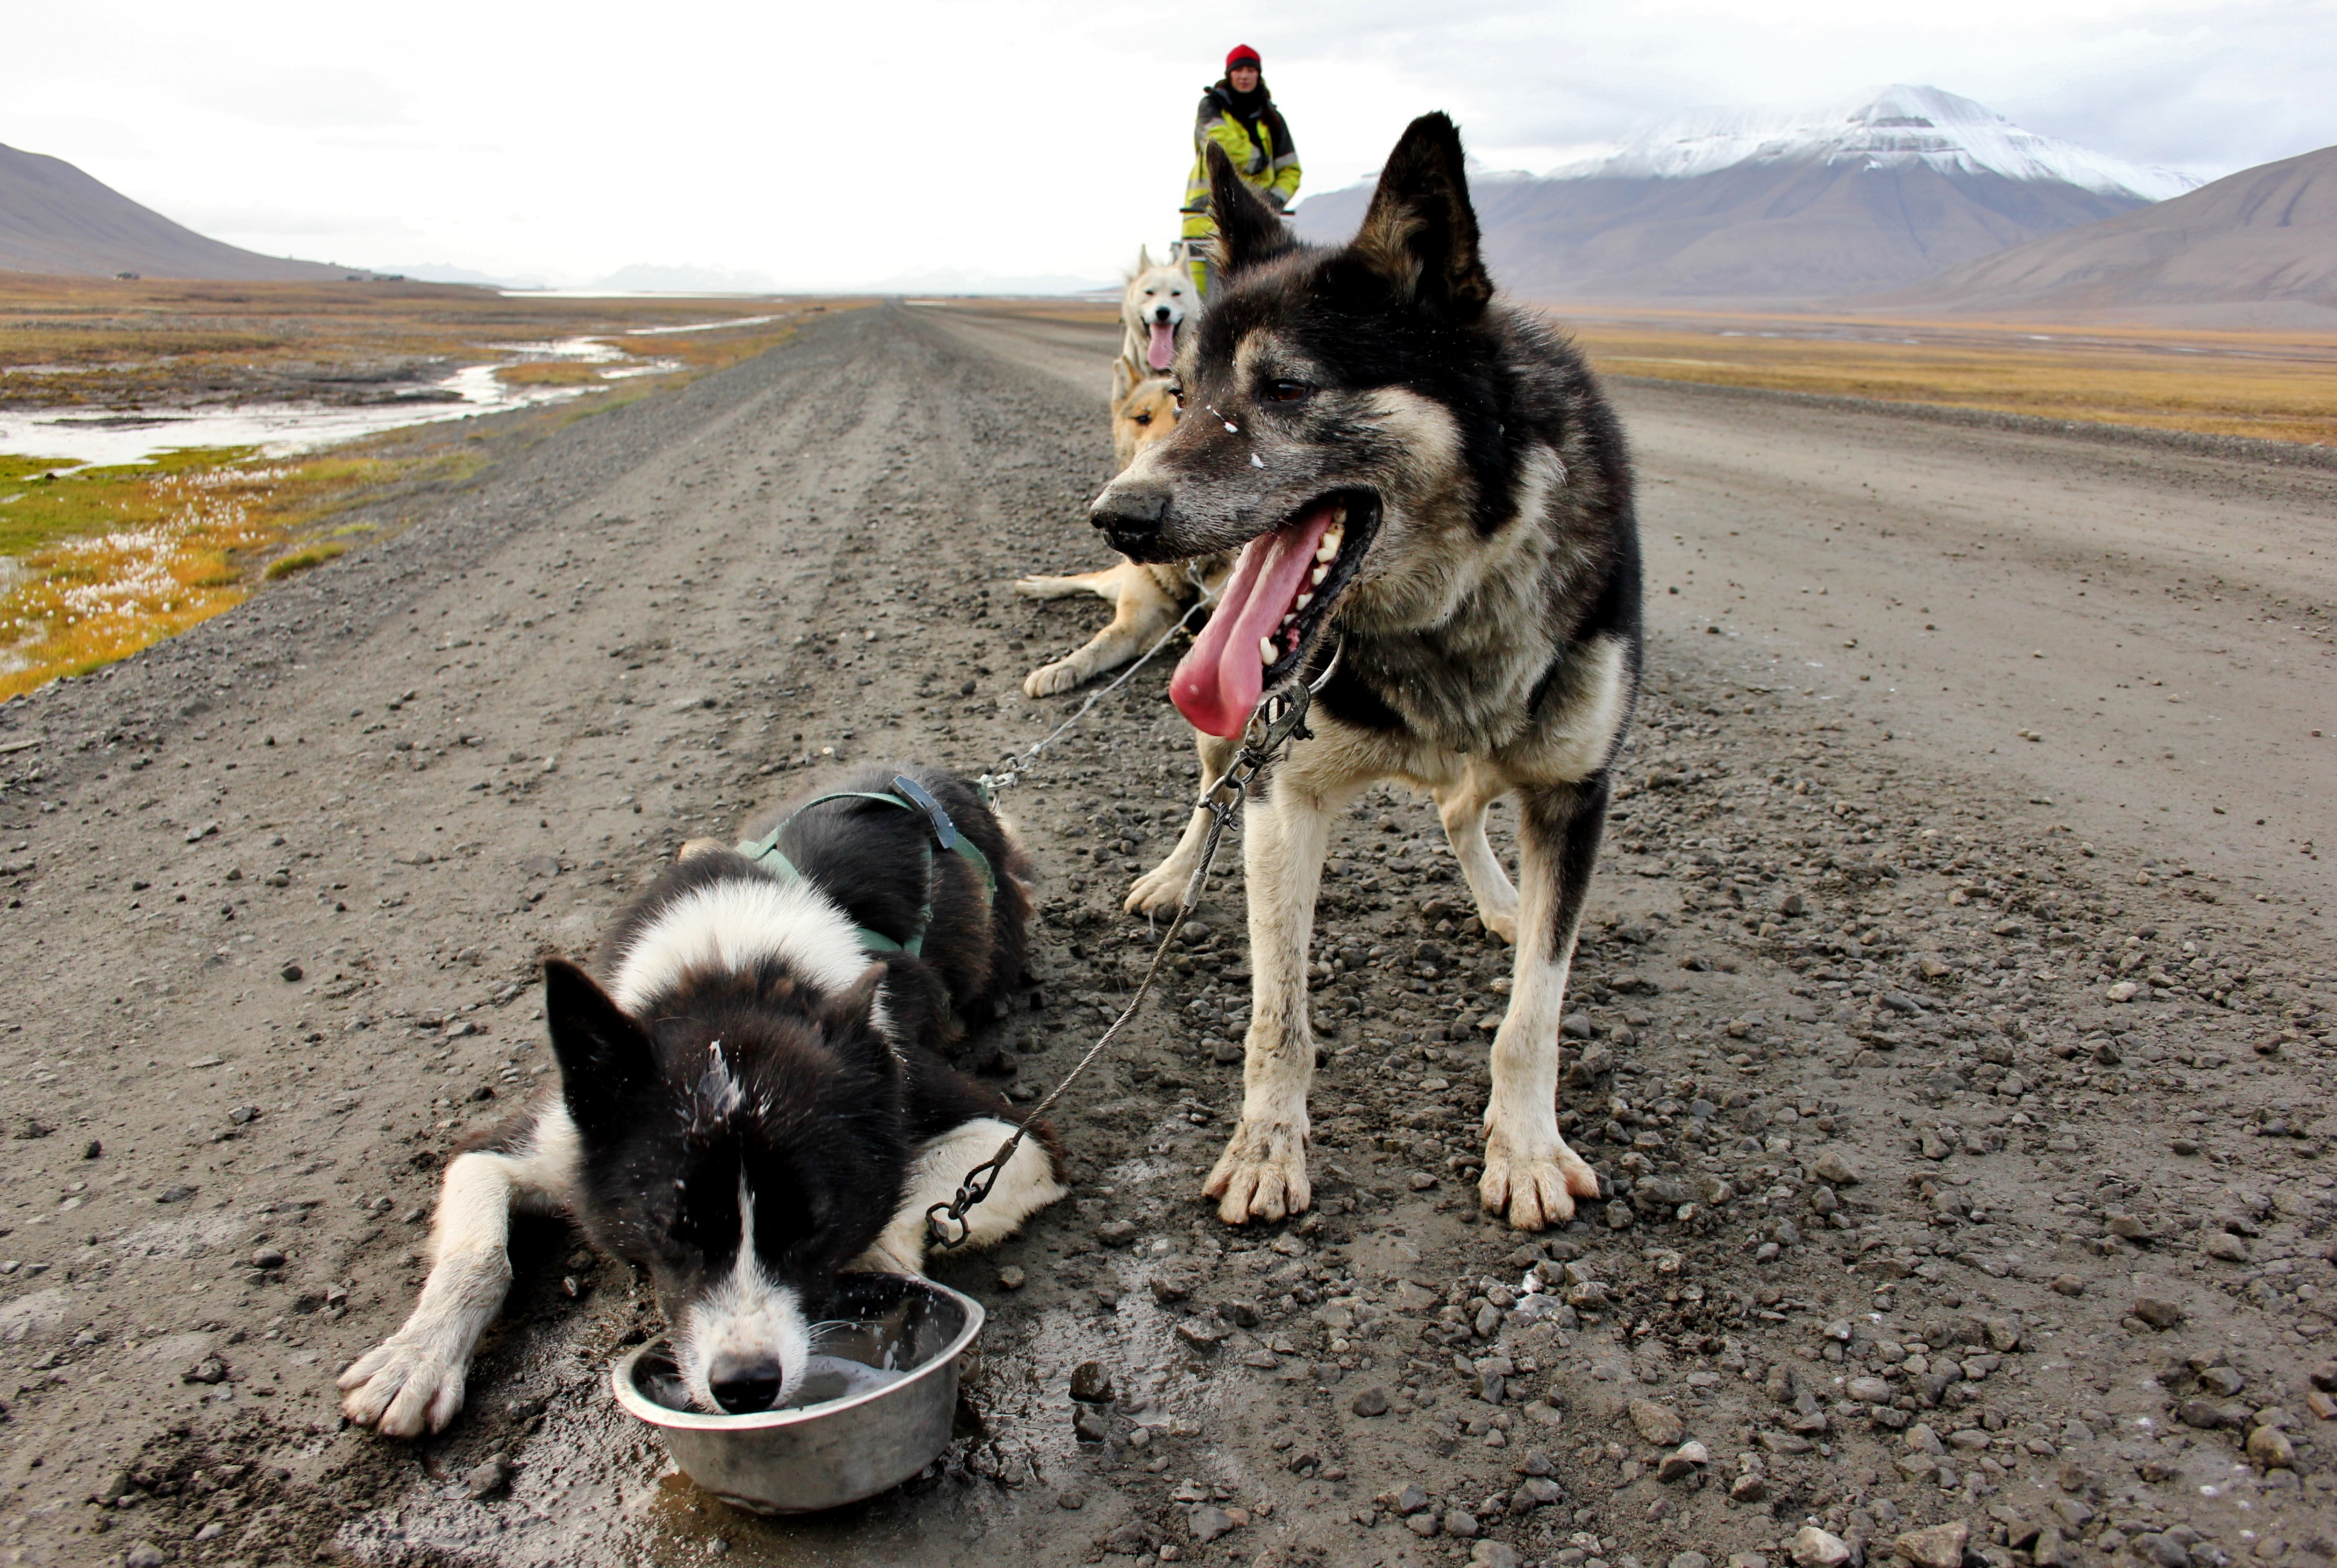 Husky dog sledding in Spitsbergen, Norway